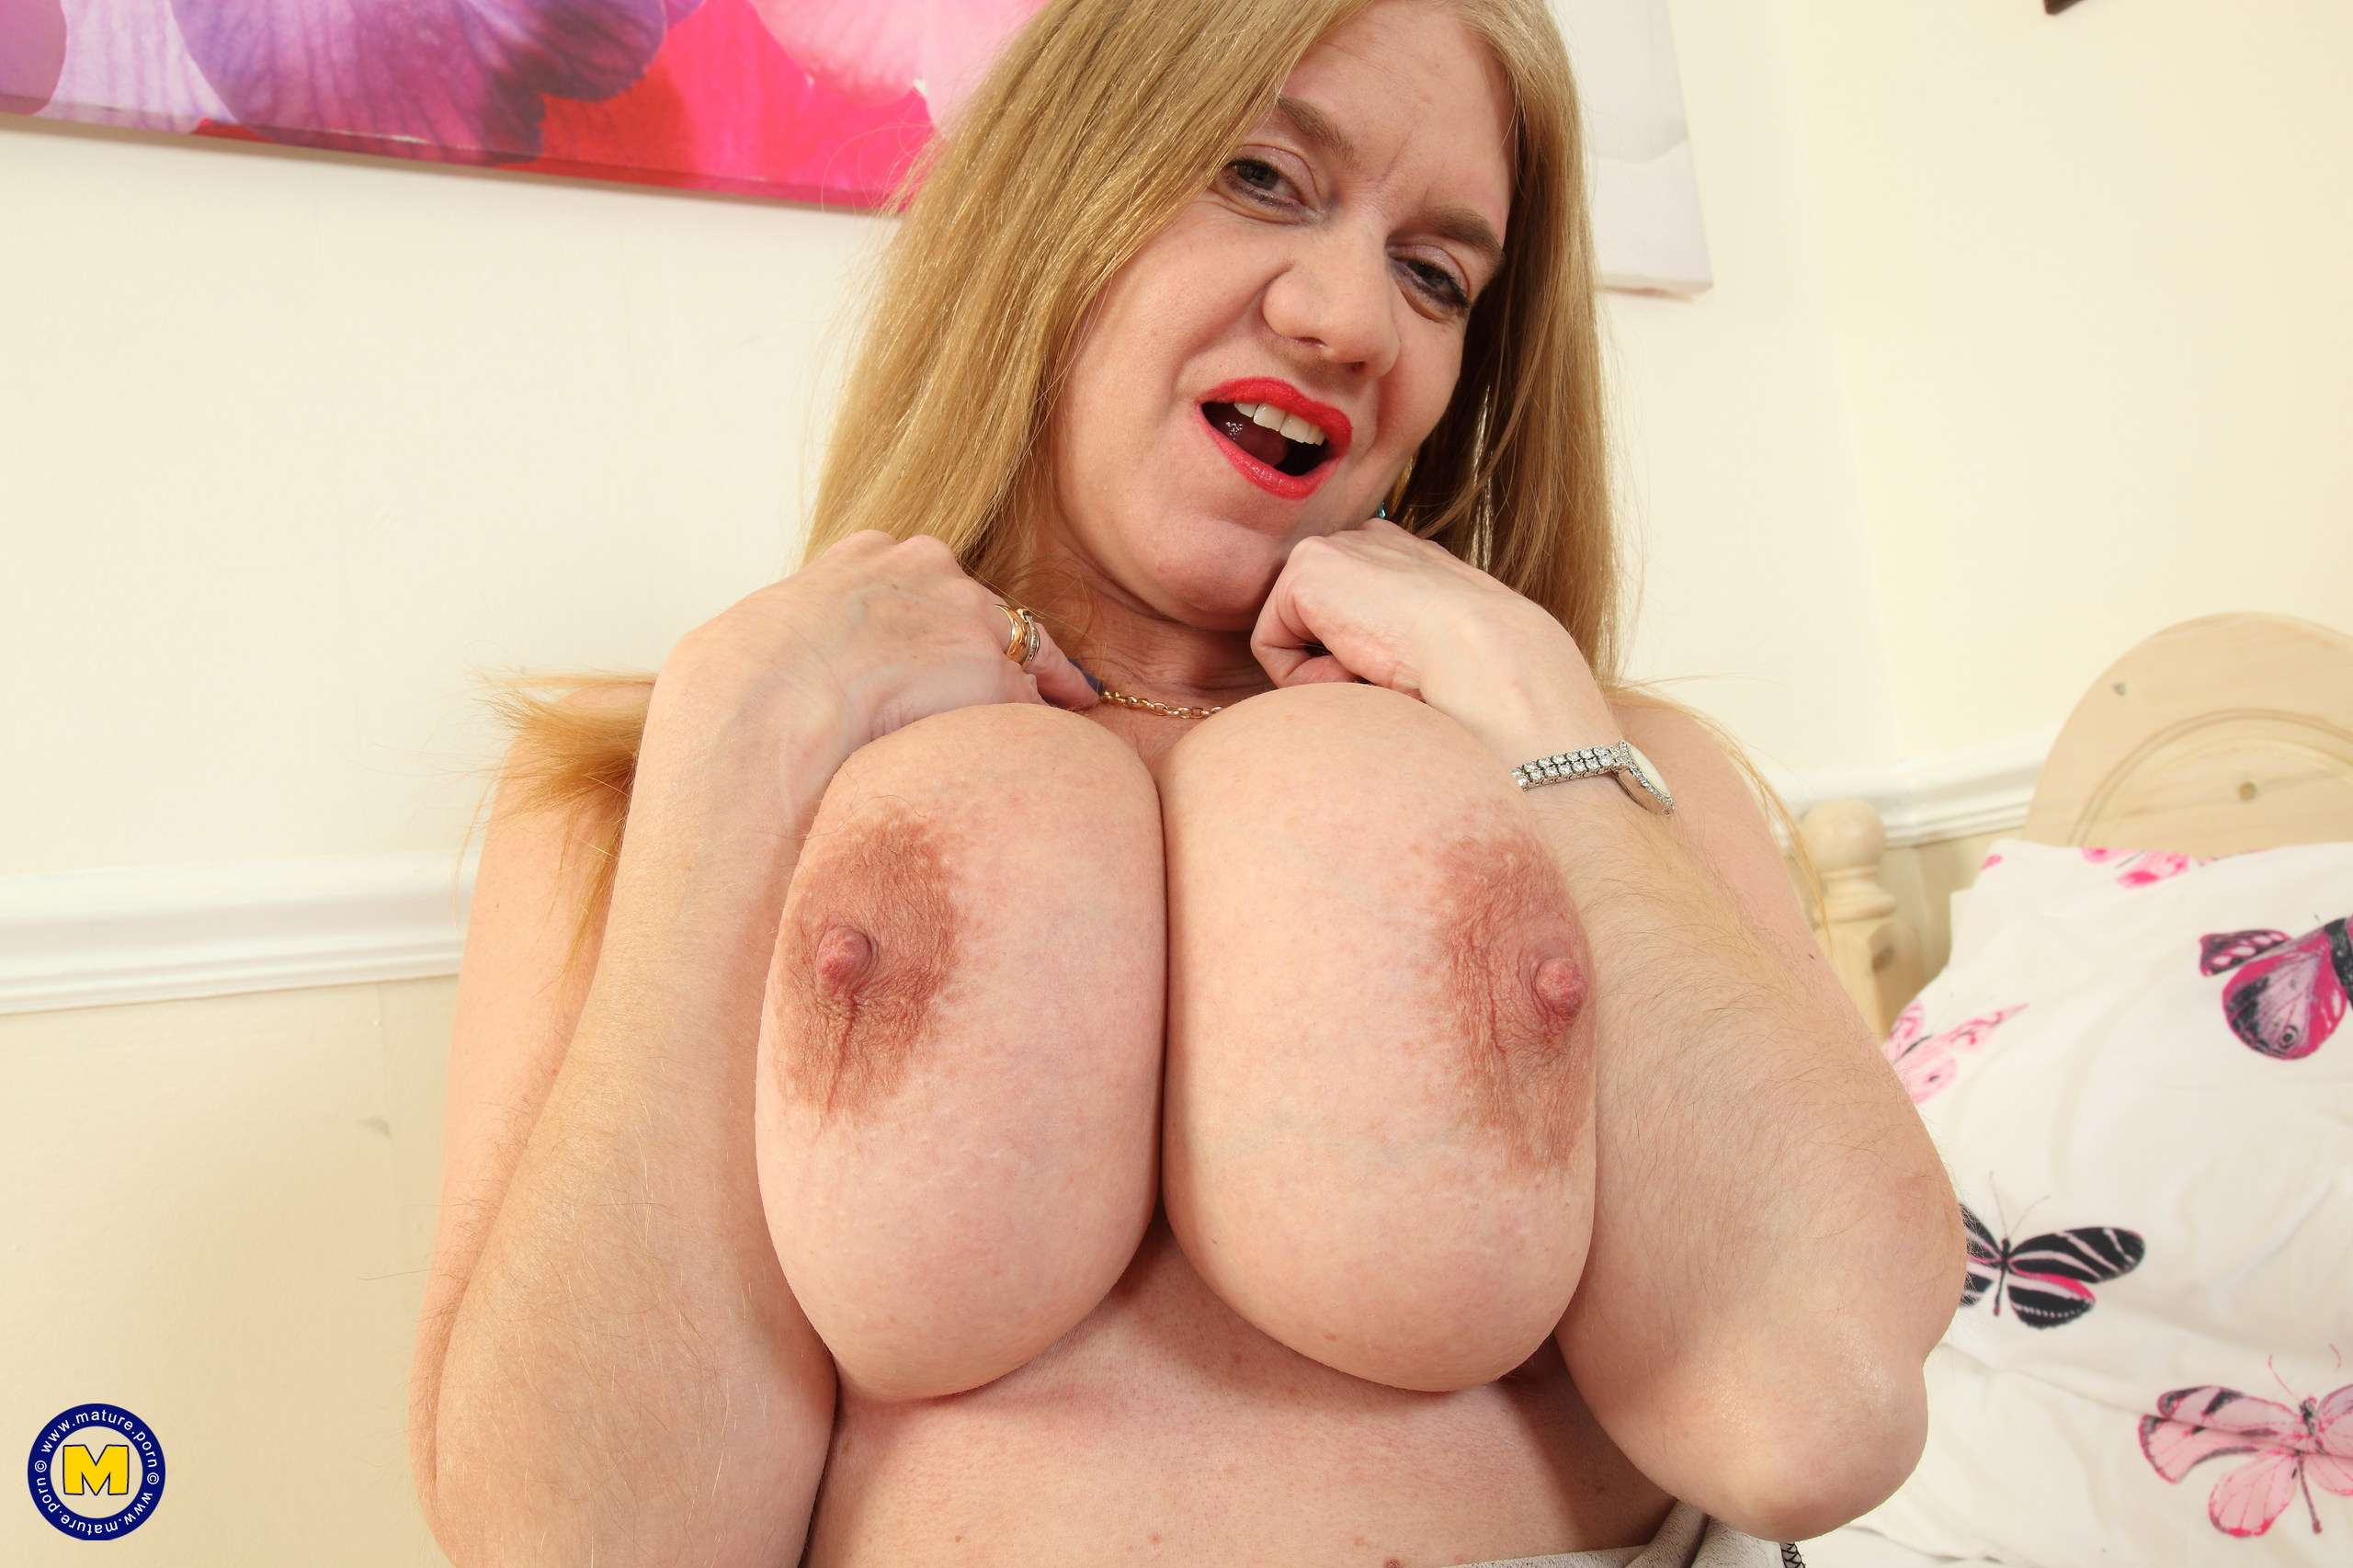 Big breasted housewife Lily May playing with herself